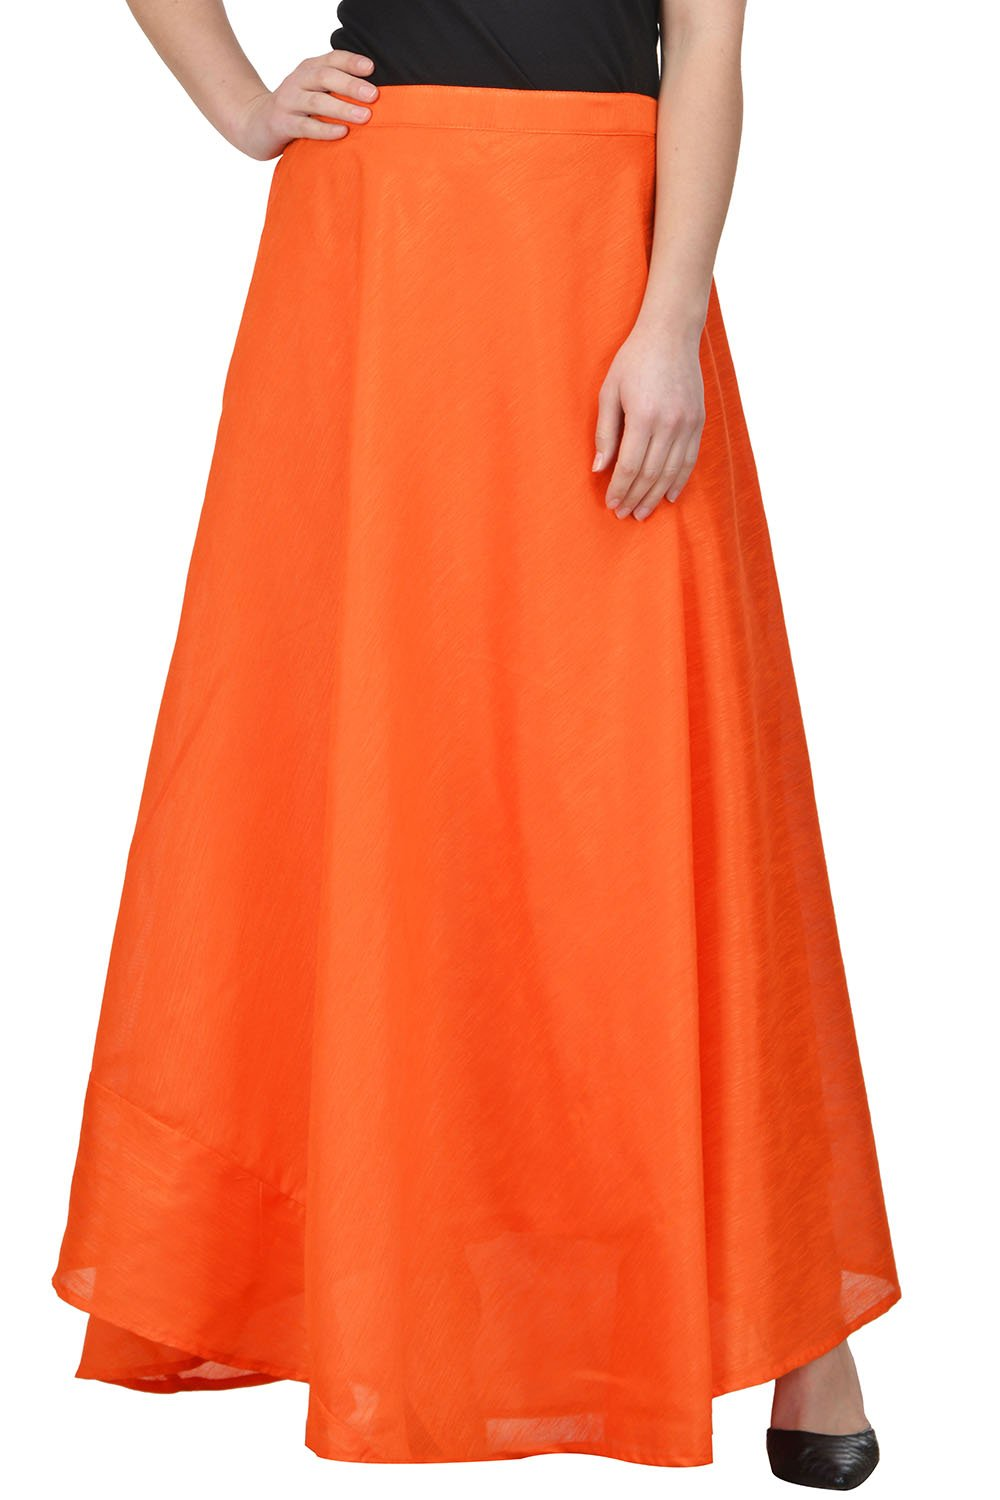 Castle Orange Solid Raw Silk Skirt